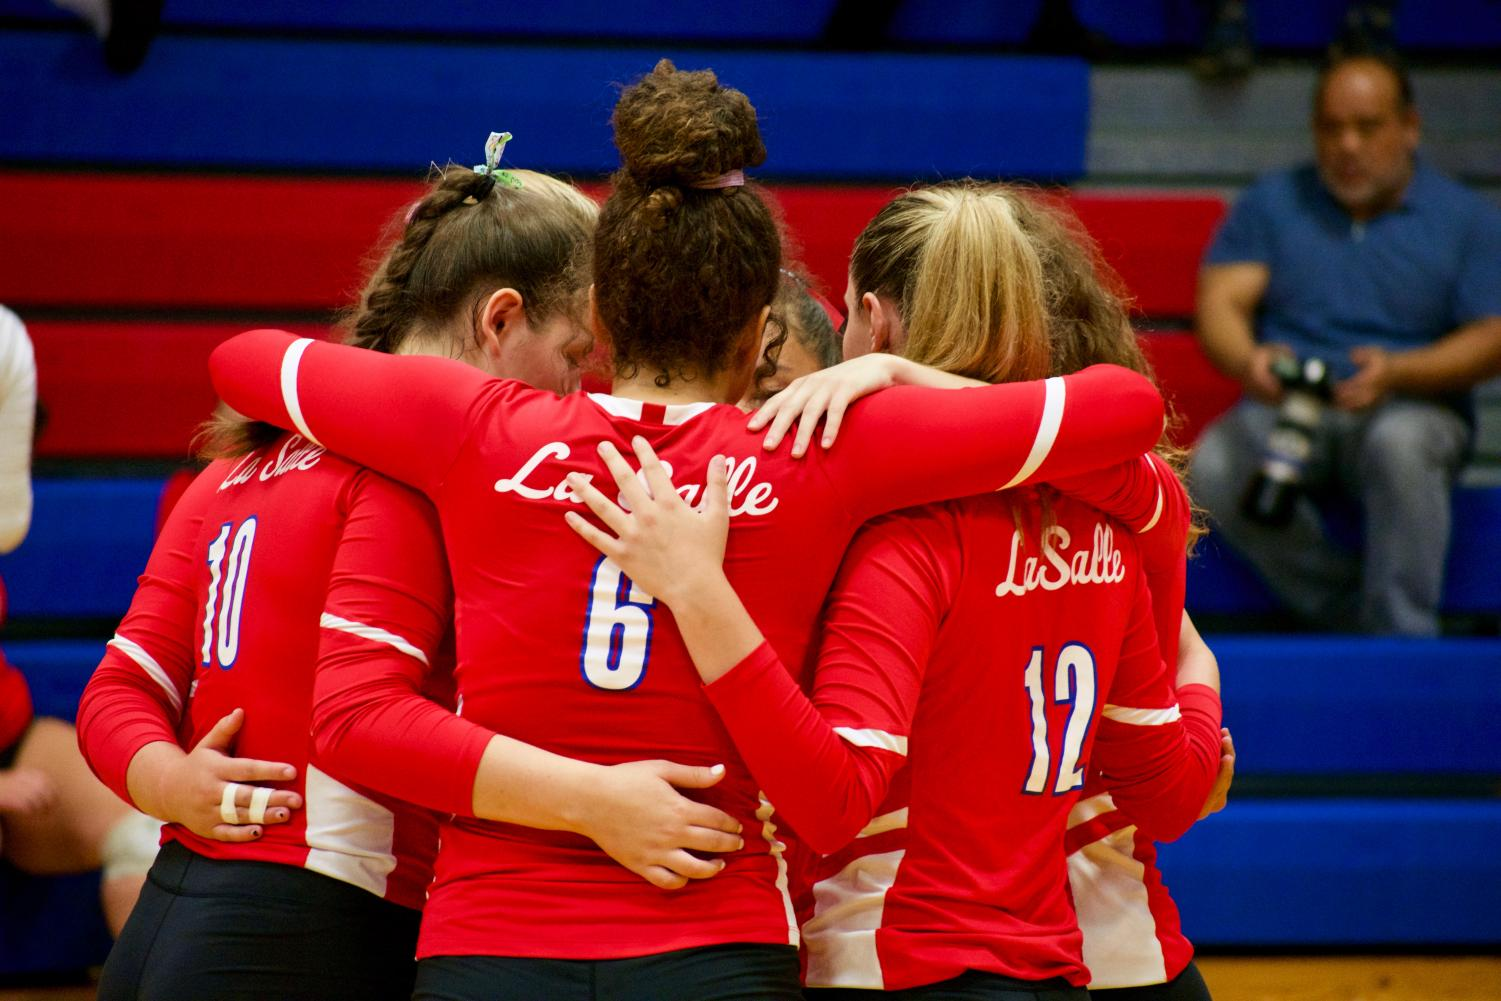 """According to the team's head coach Anna Dillard, """"when it's a struggle, embrace it, because that's how we'll get to our goals"""